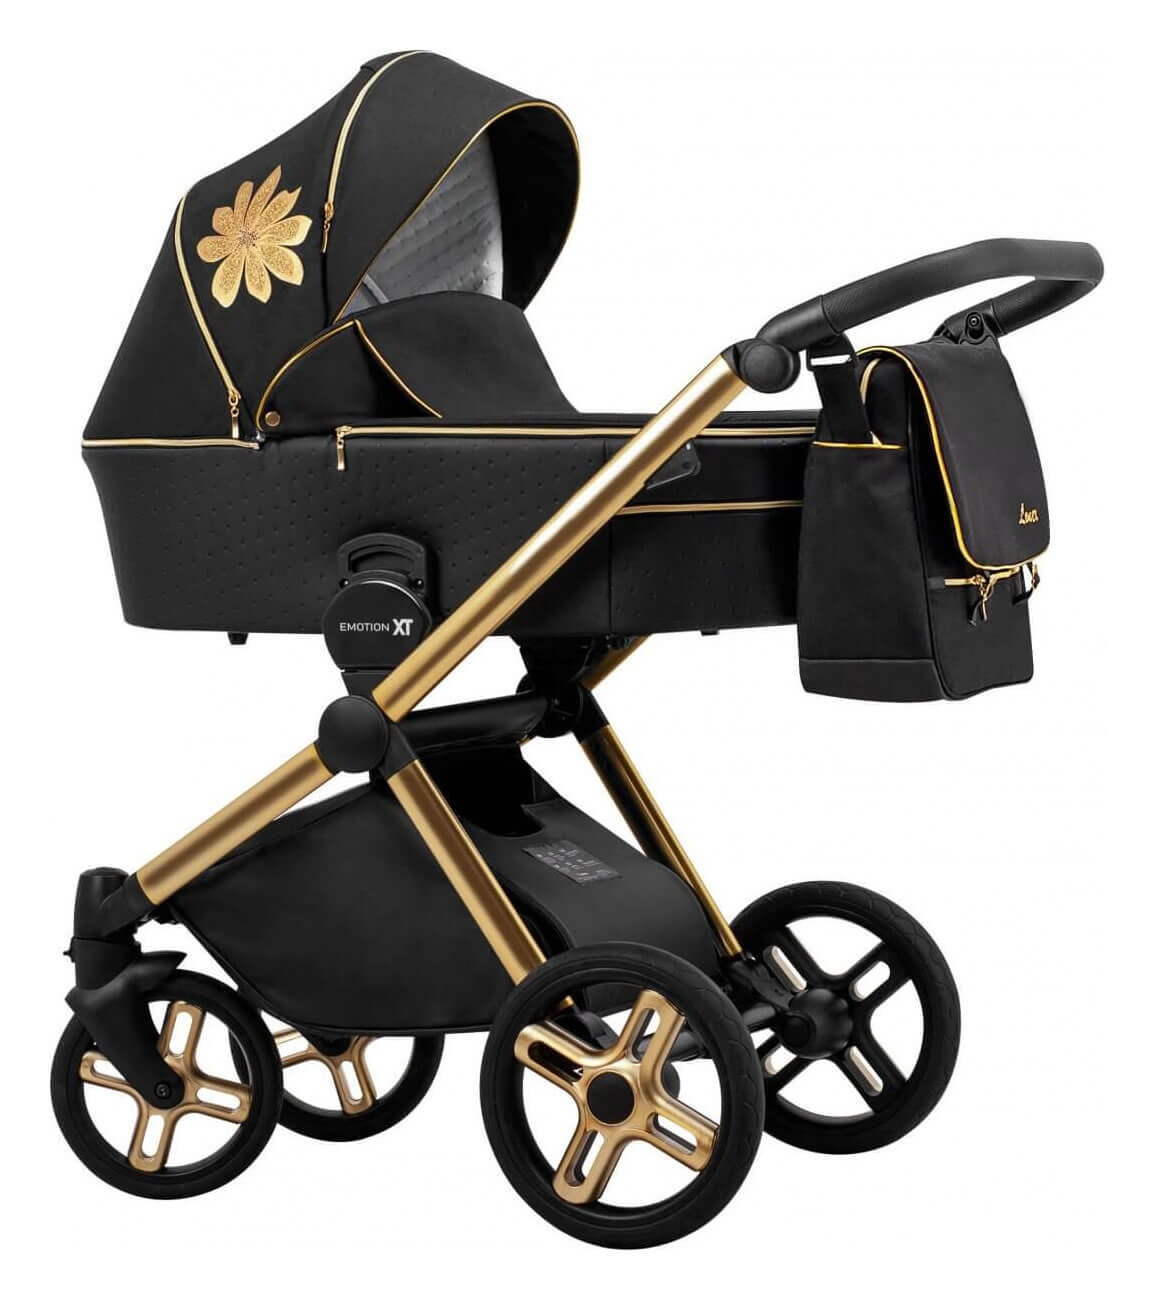 Lonex Emotion XT Flower Kombi-Kinderwagen 2 in 1 ohne Babyschale / XTF 02